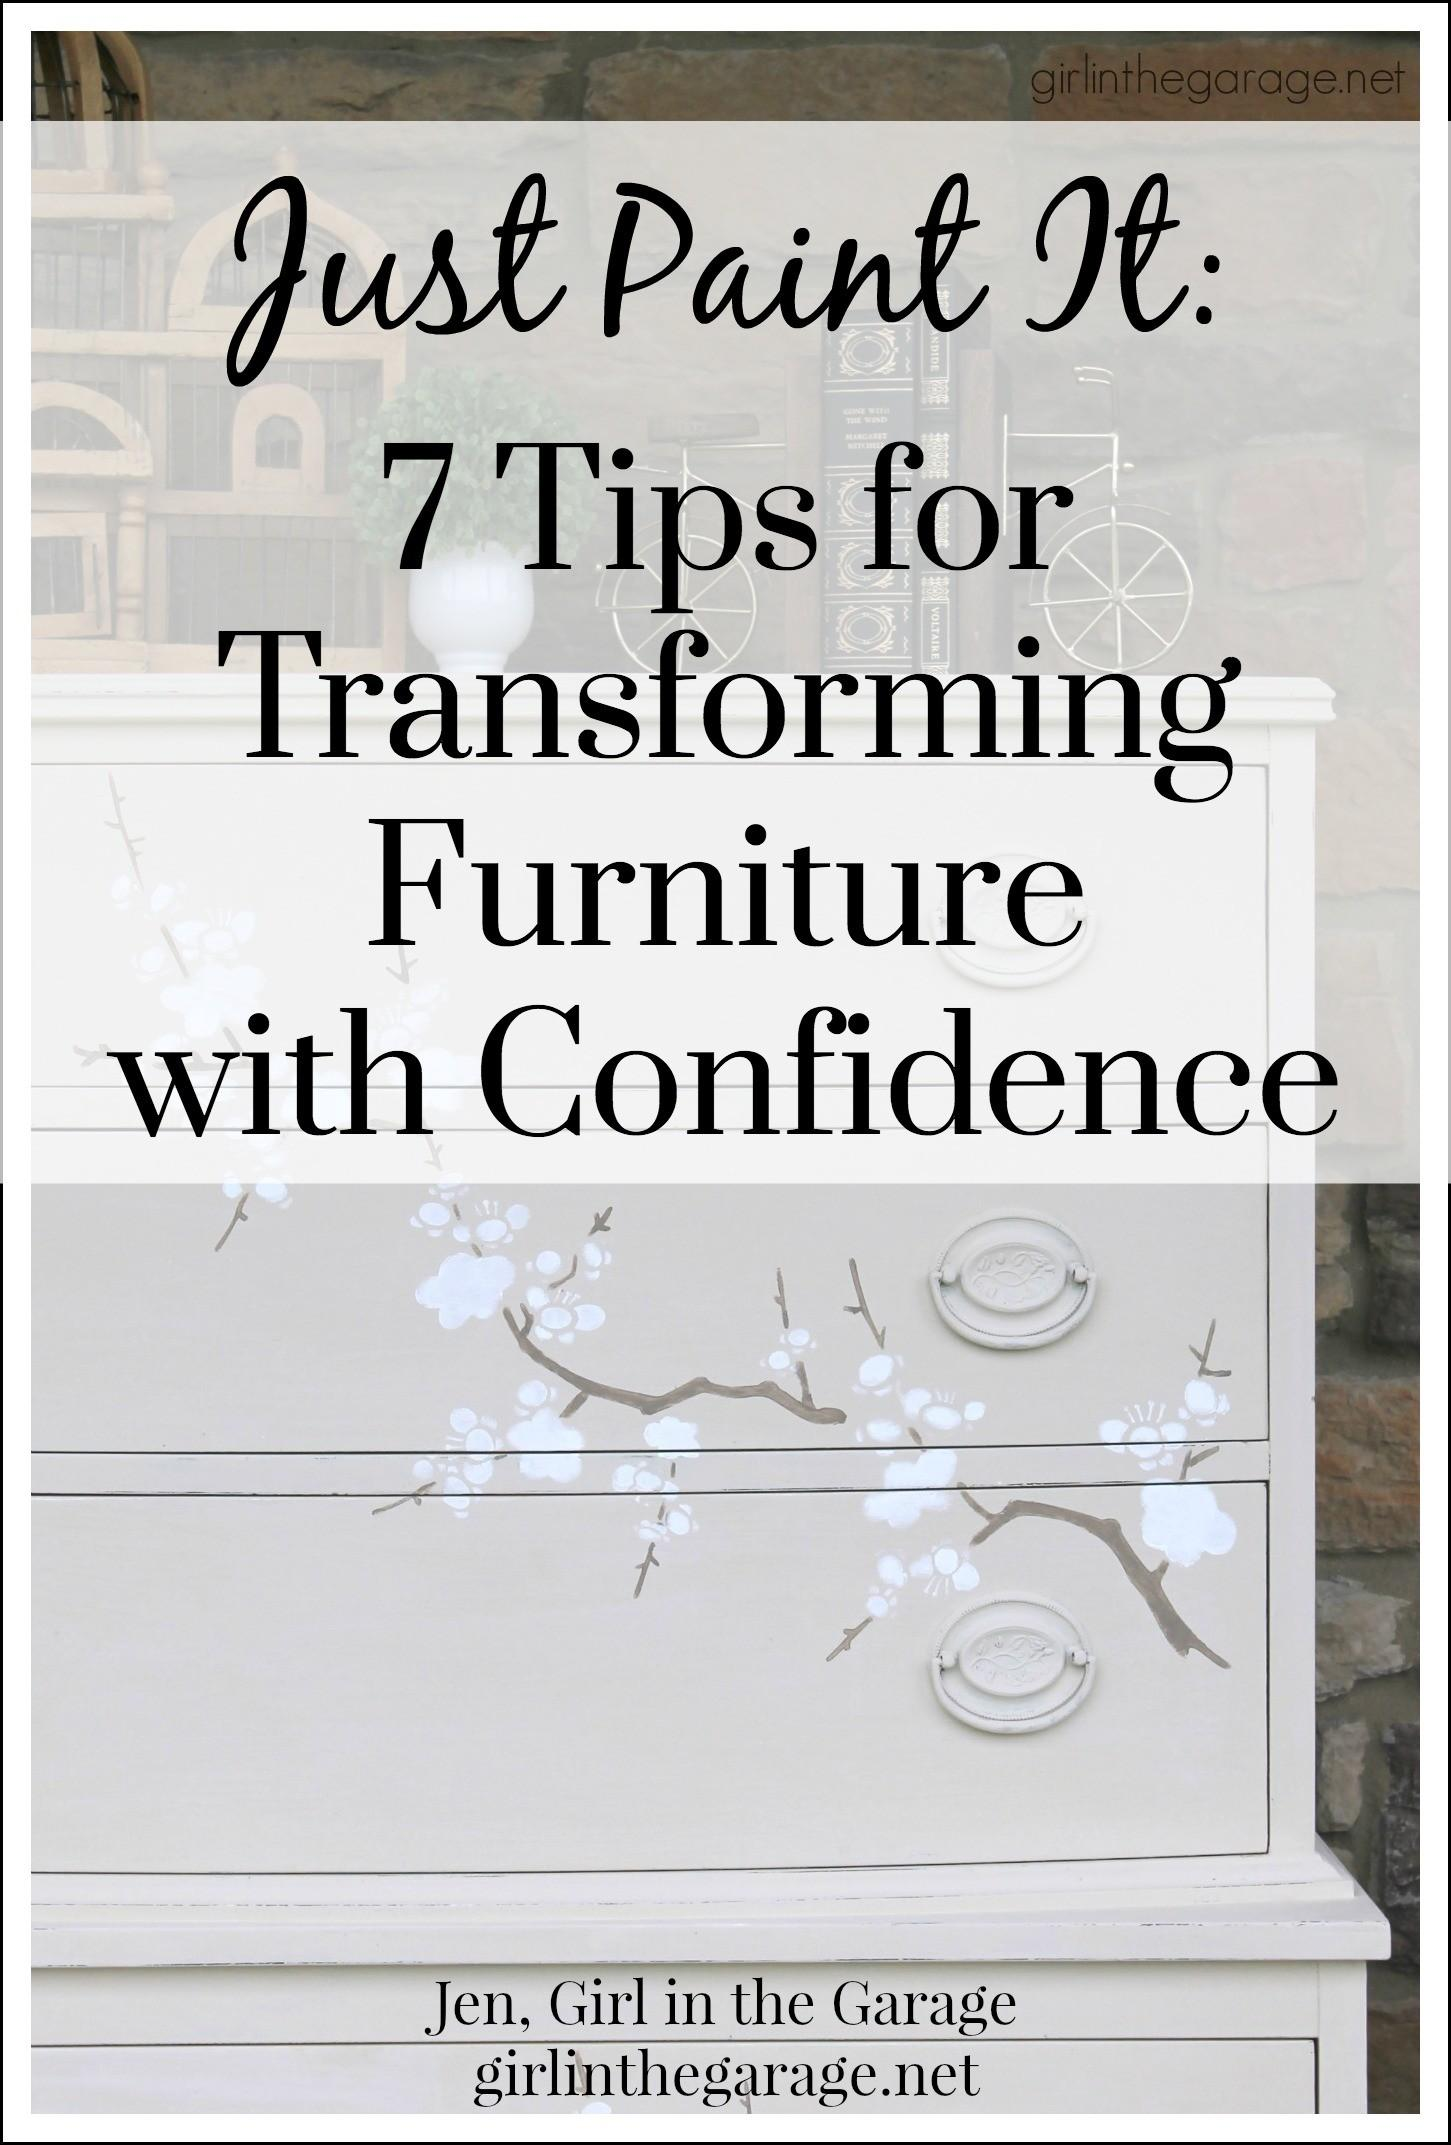 Just Paint Tips Transforming Furniture